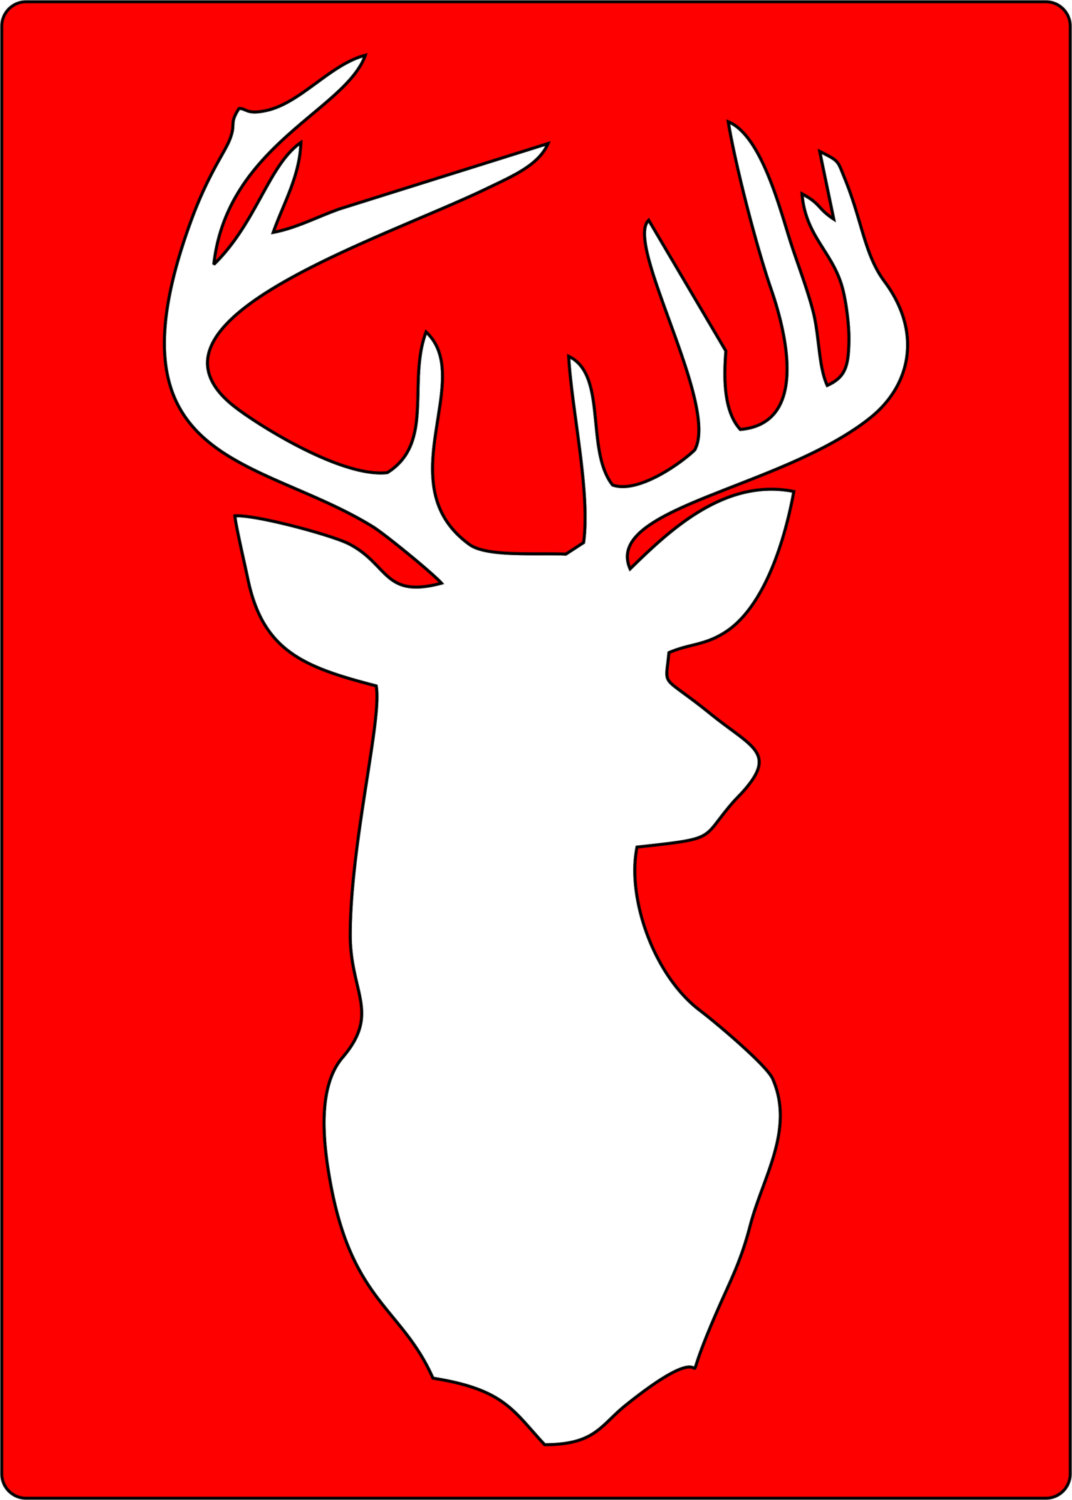 Deer Head Silhouette Template